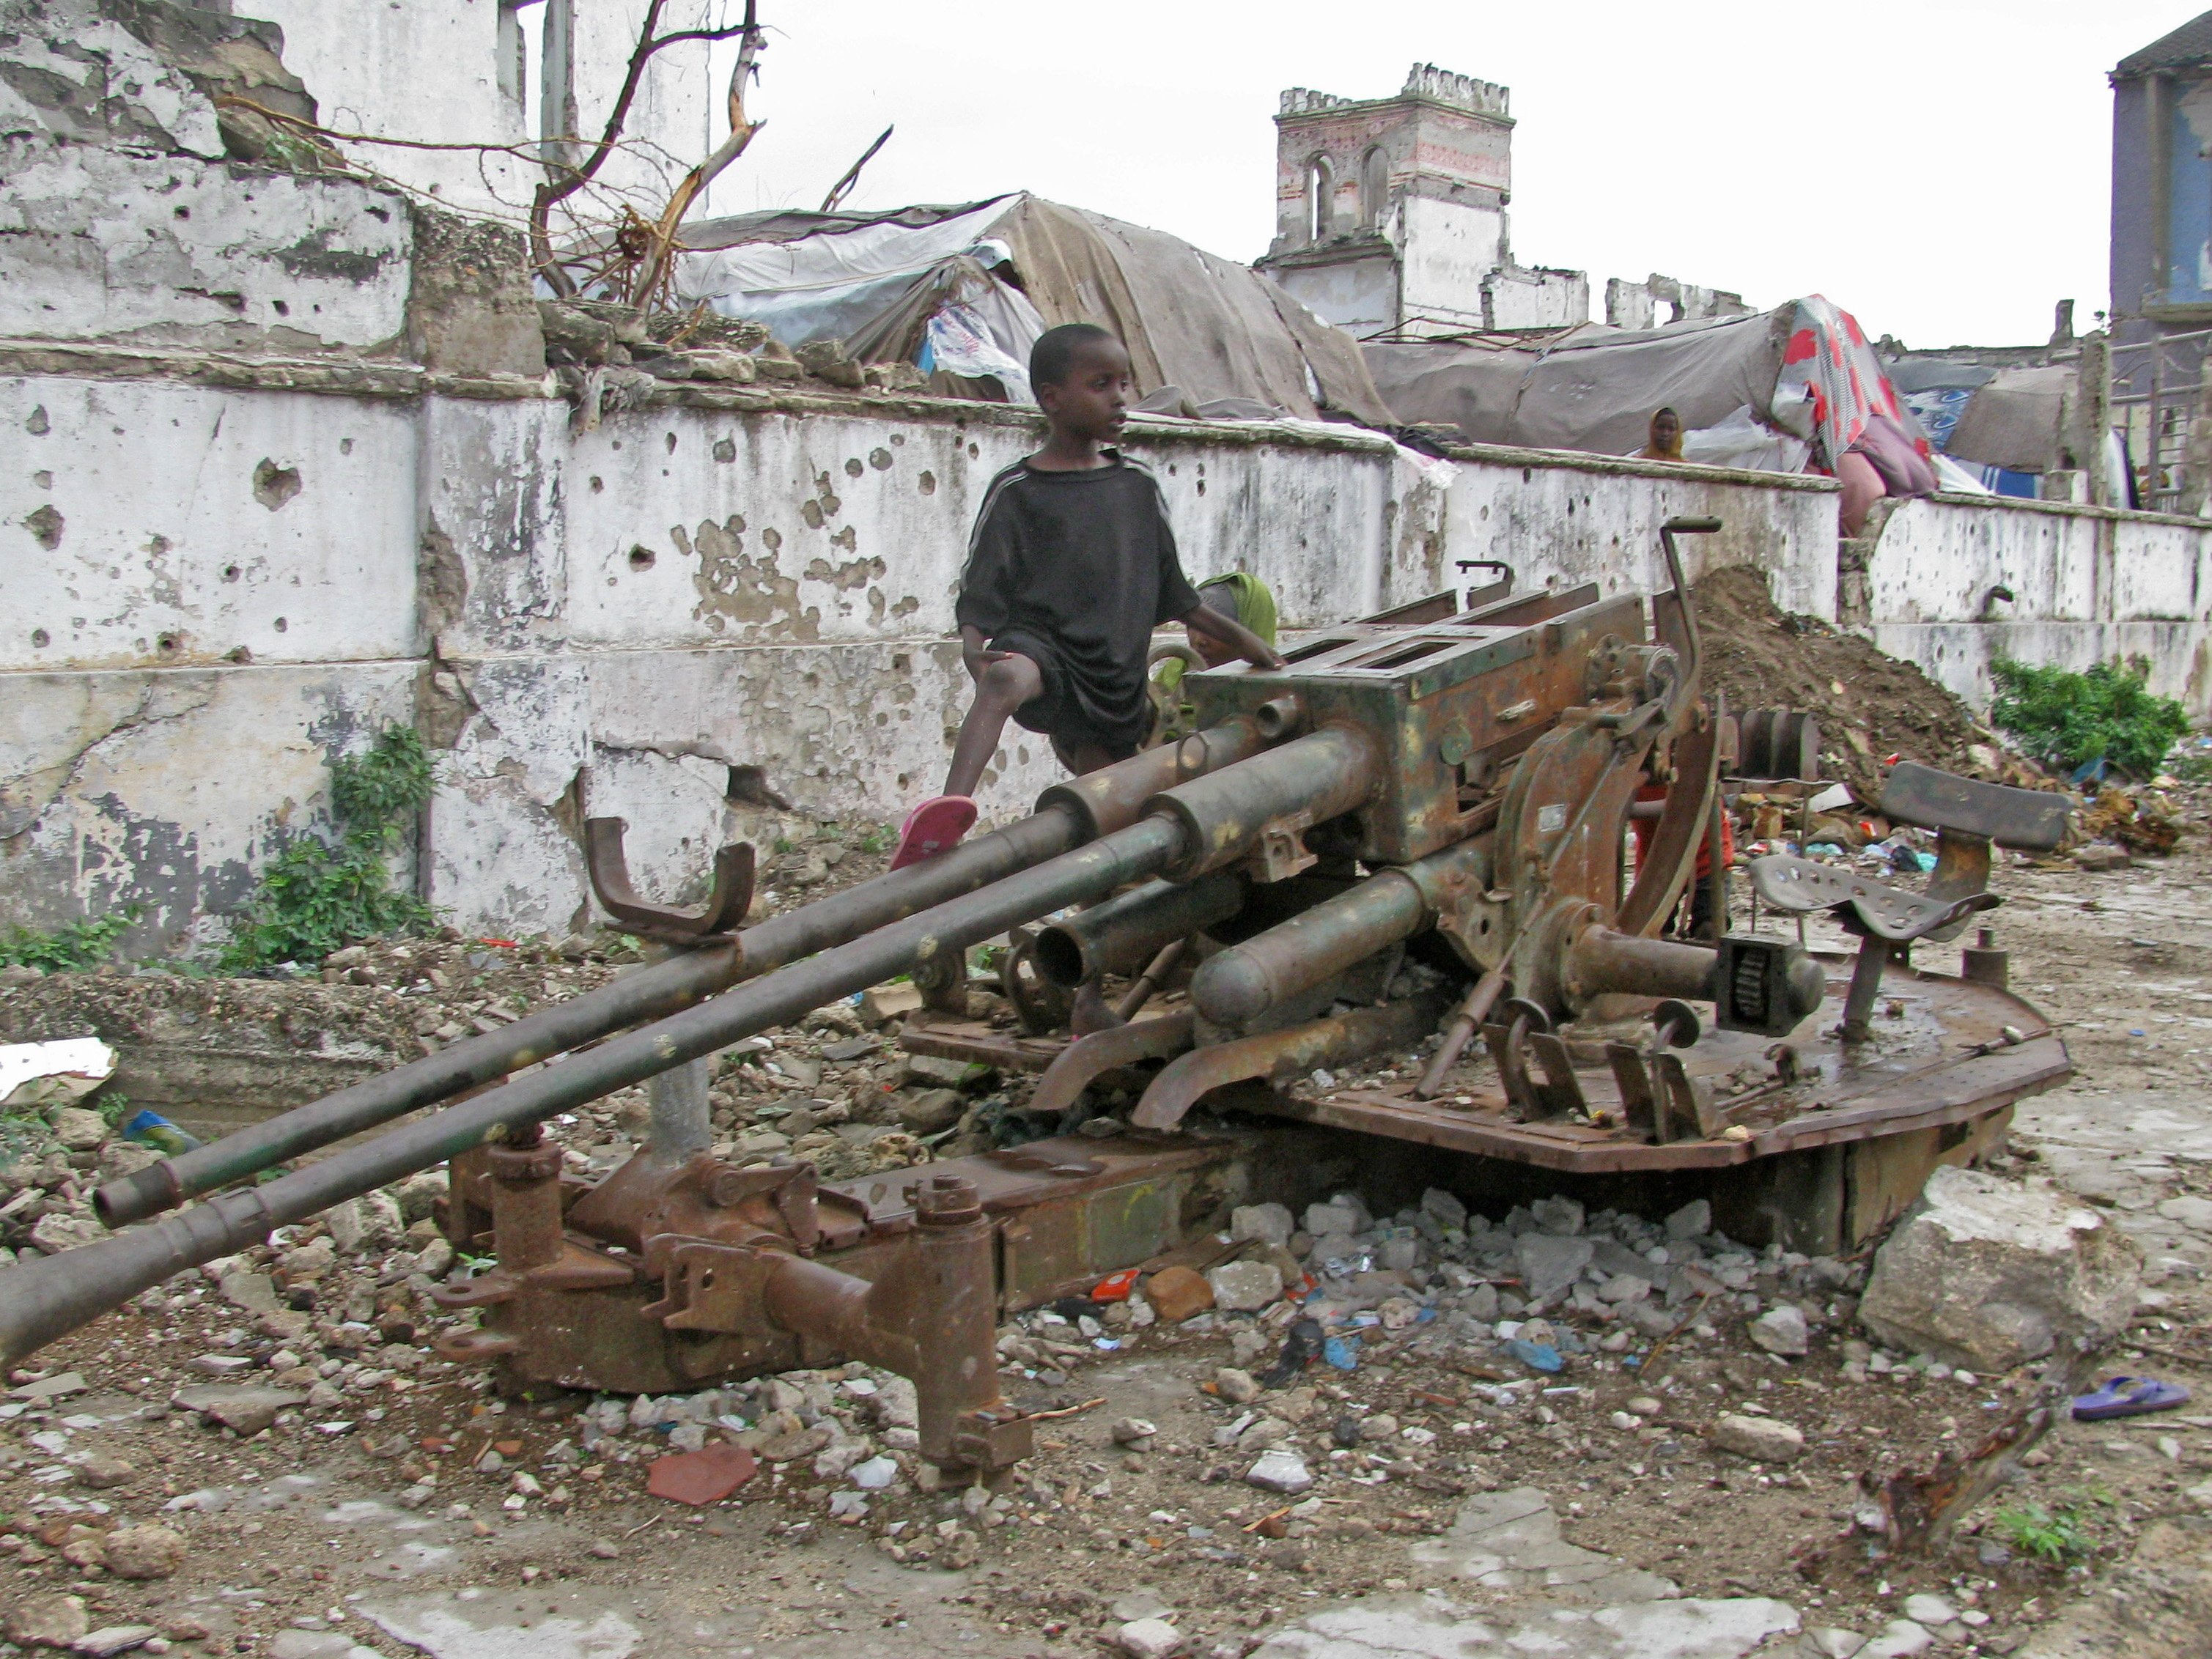 A child plays with an old artillery piece in Shangani District, Mogadishu